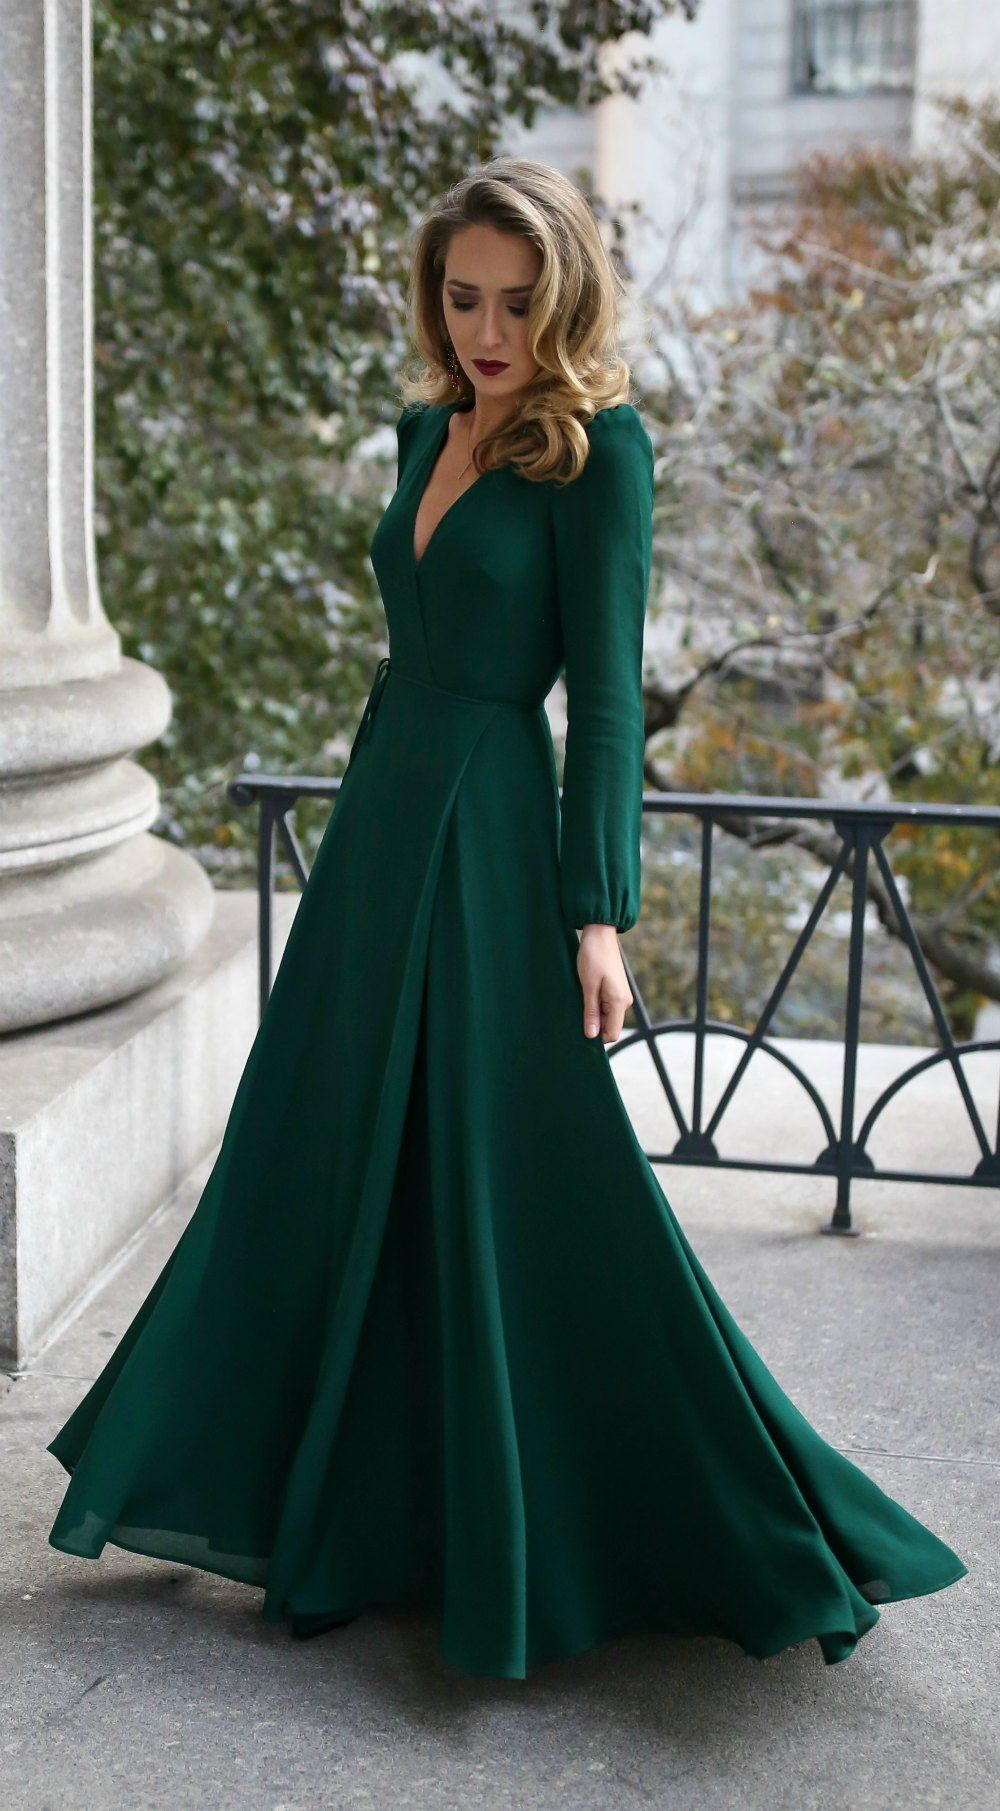 30 Dresses In 30 Days Black Tie Wedding Guest Emerald Green Long